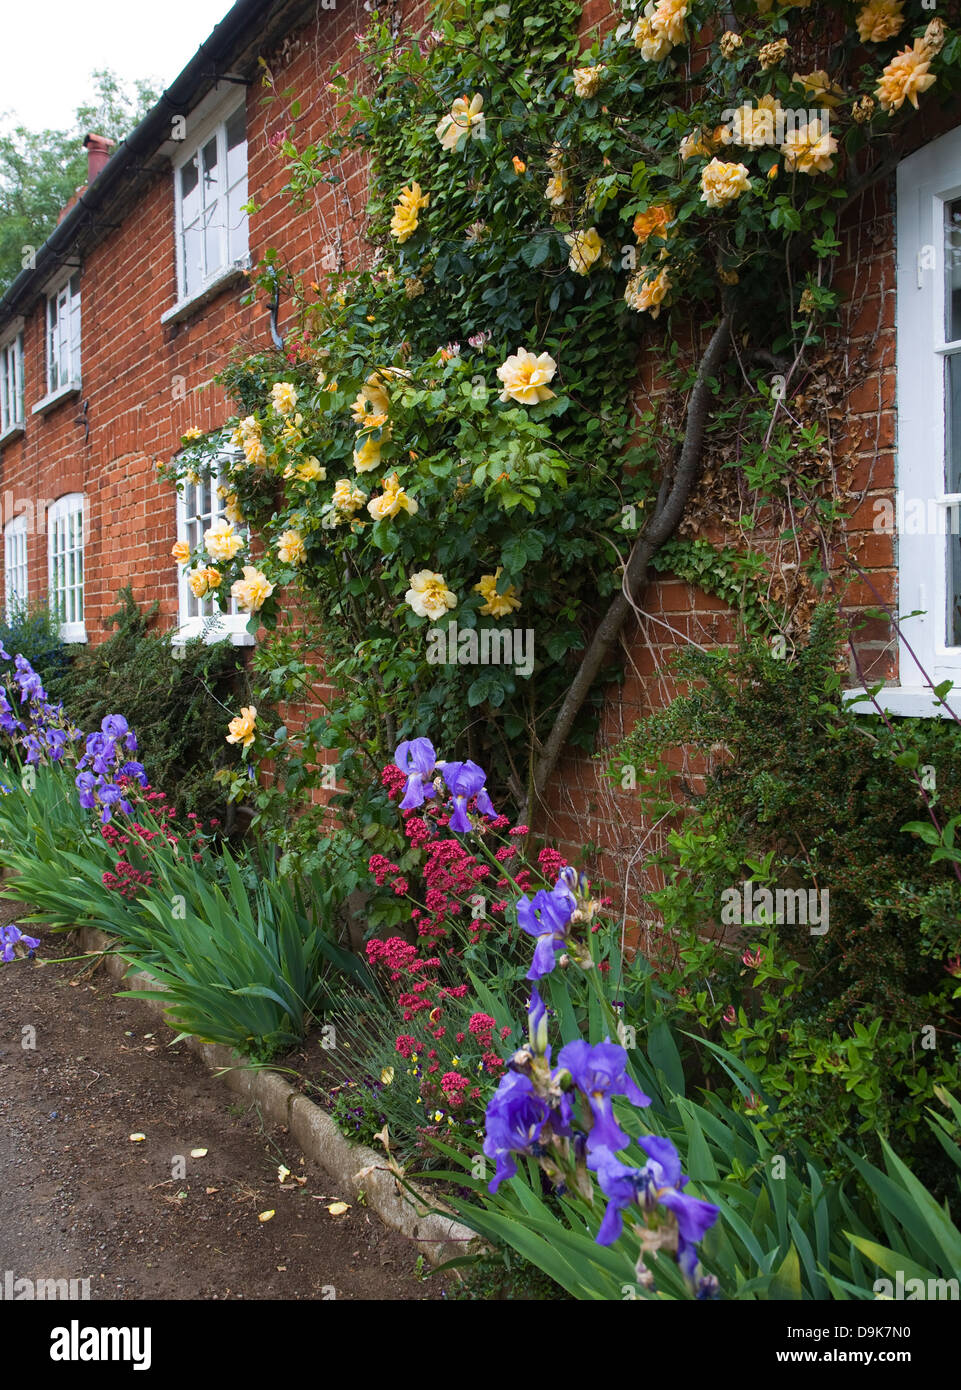 Yellow rambling roses growing on brick cottage wall, Suffolk, England - Stock Image